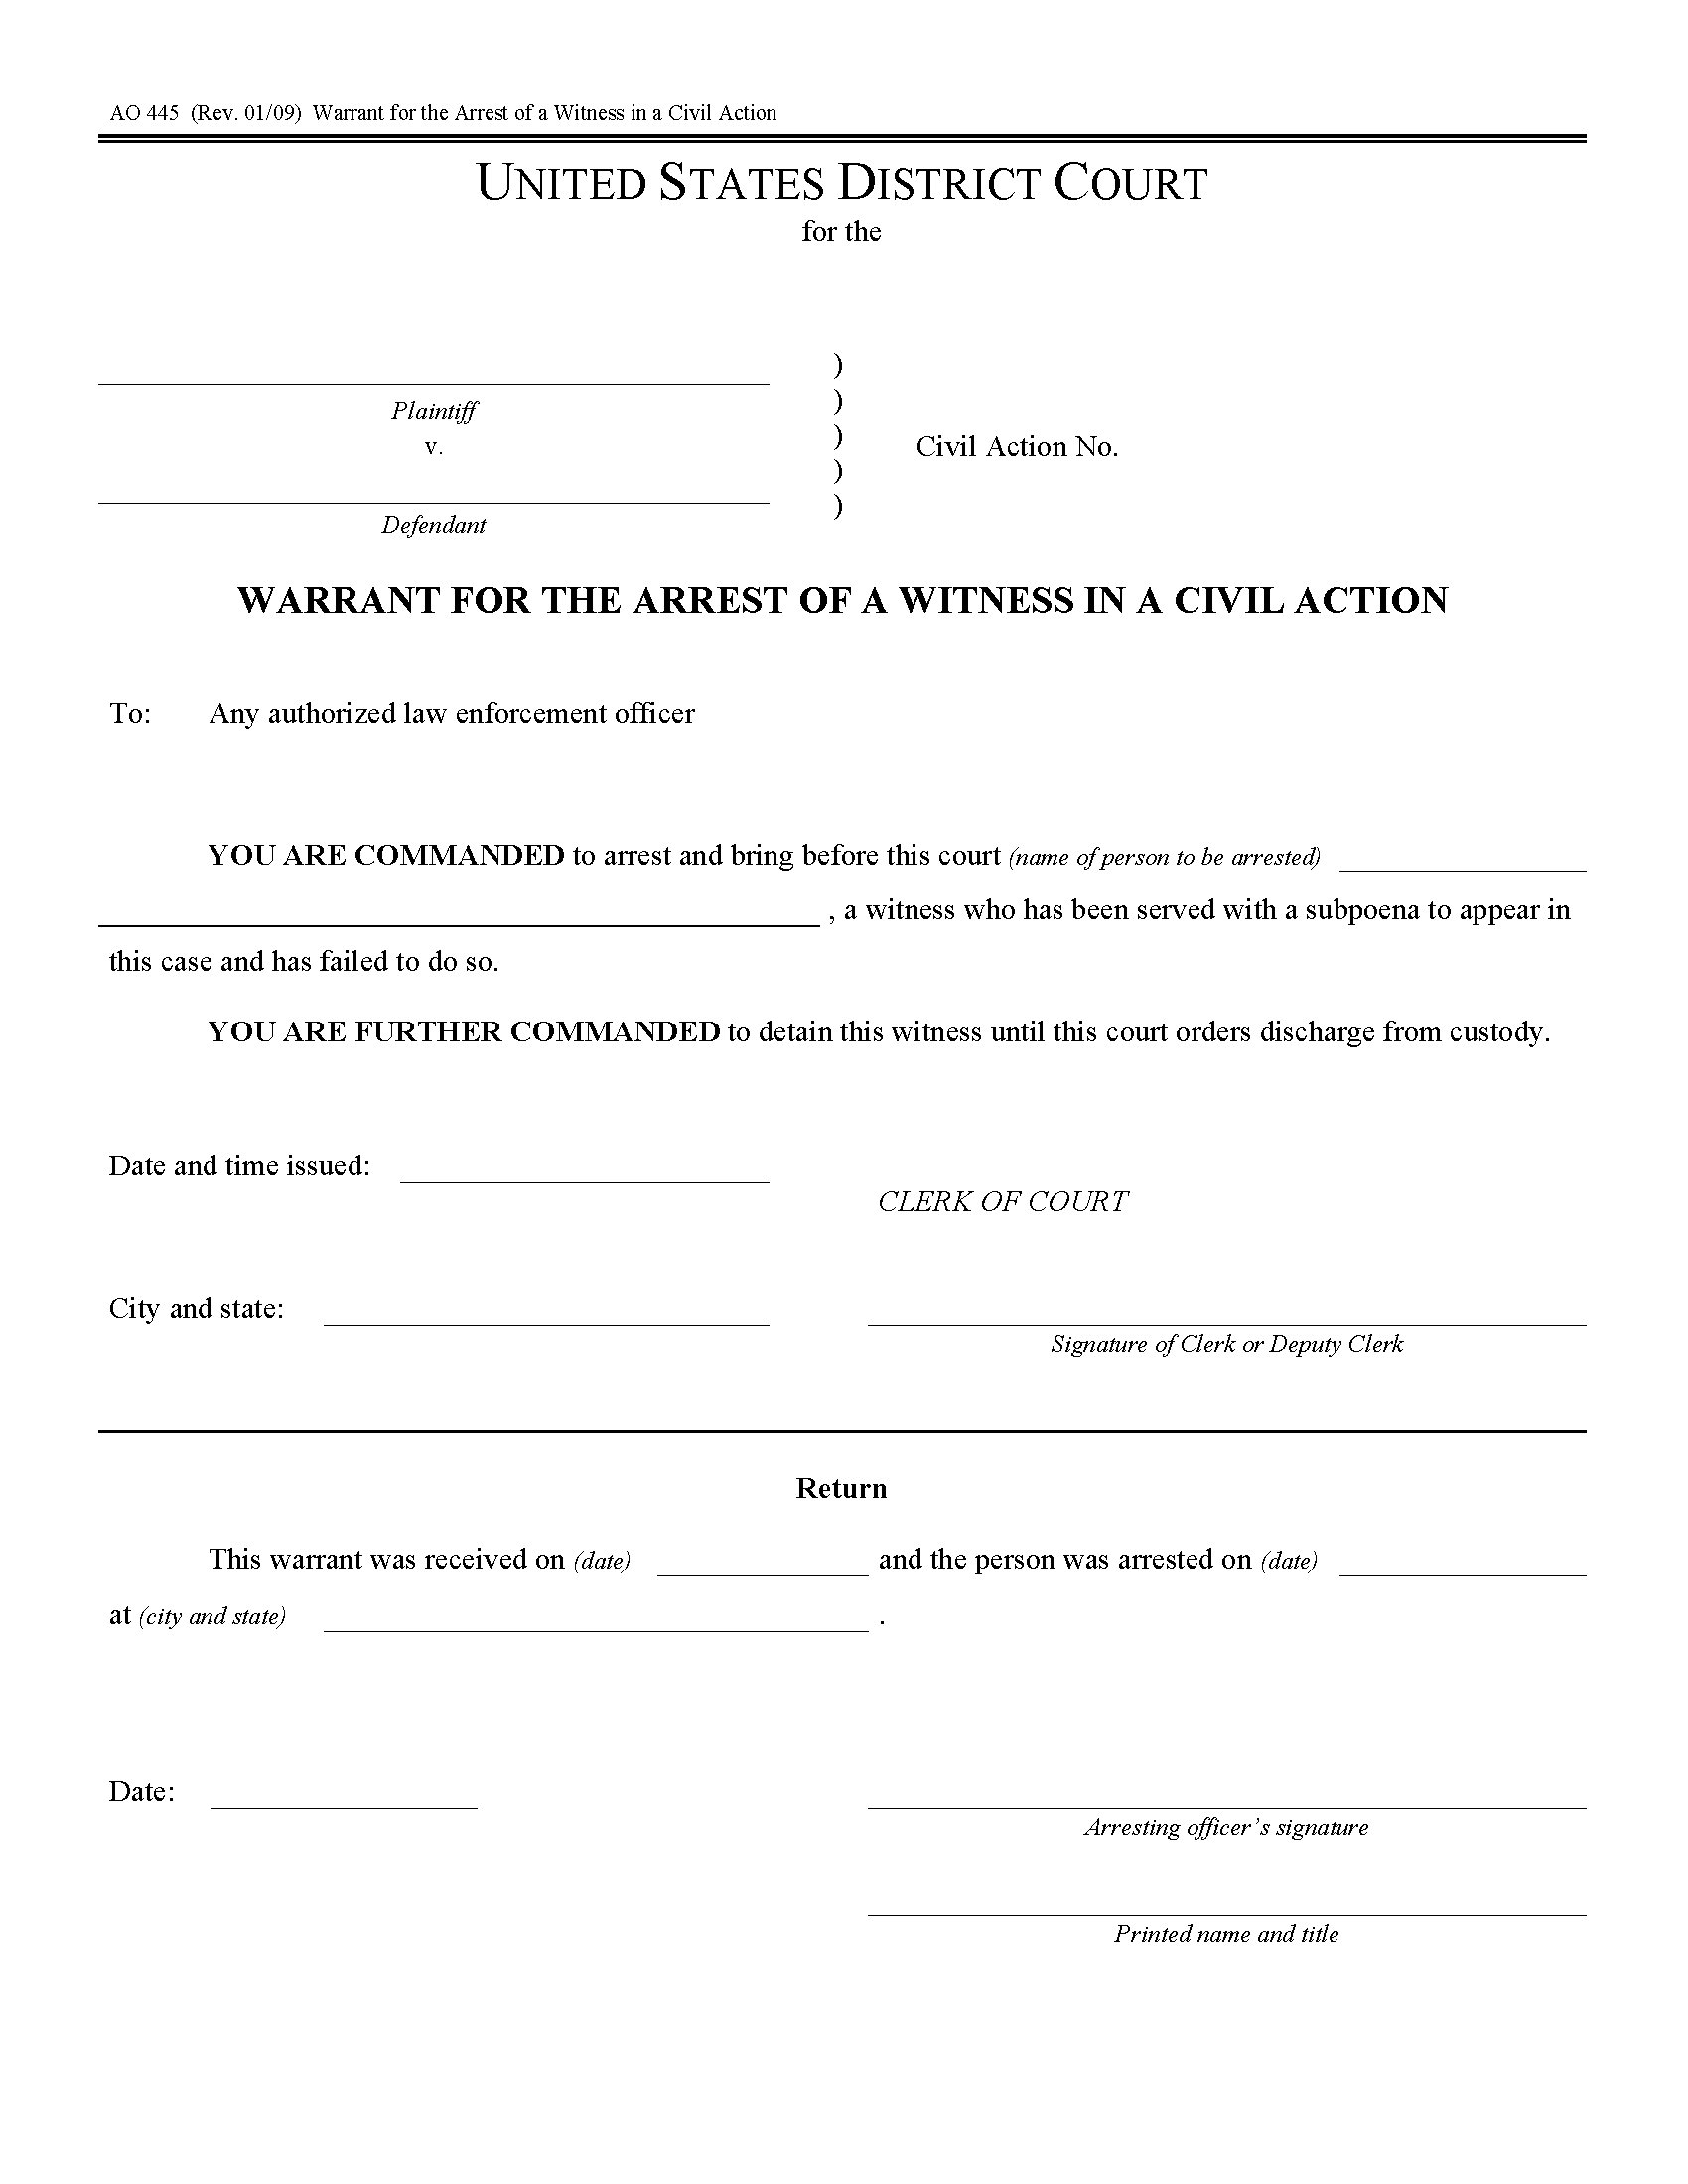 Usa Arrest Warrant For Witness In Civil Action Form Ao445